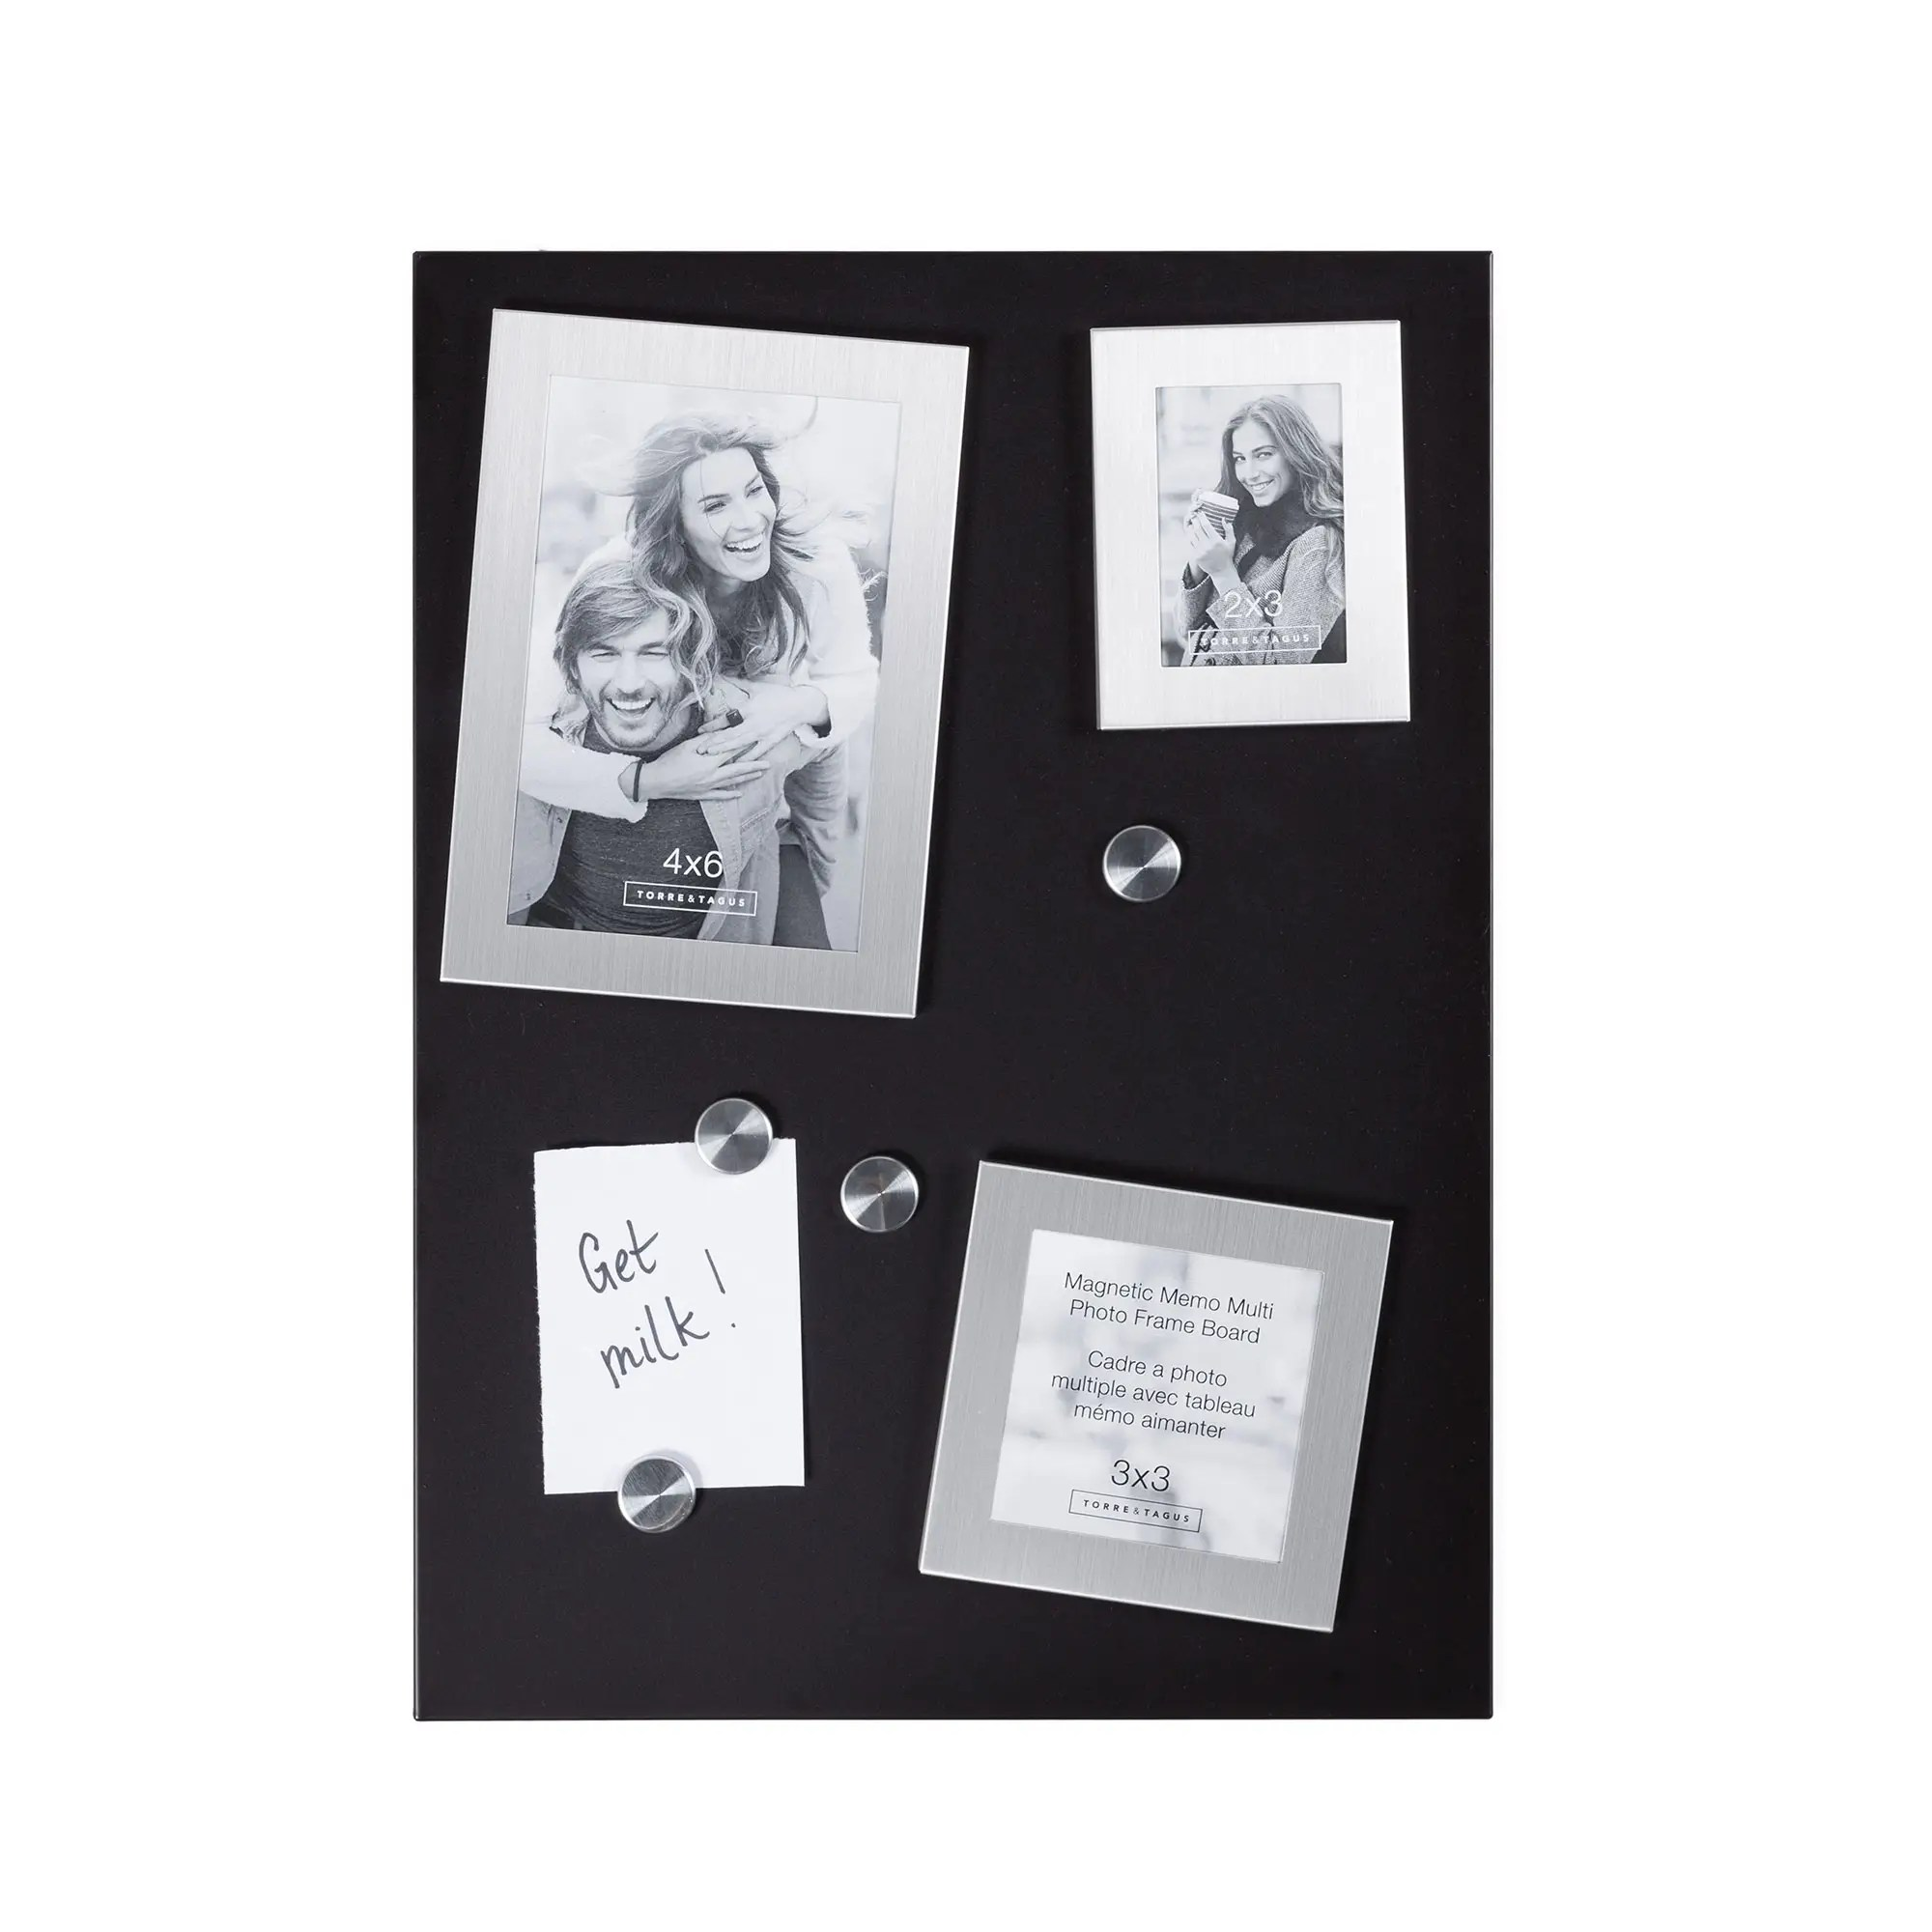 Cadre Photo Multiple Magnetic Memo Photo Frame Board